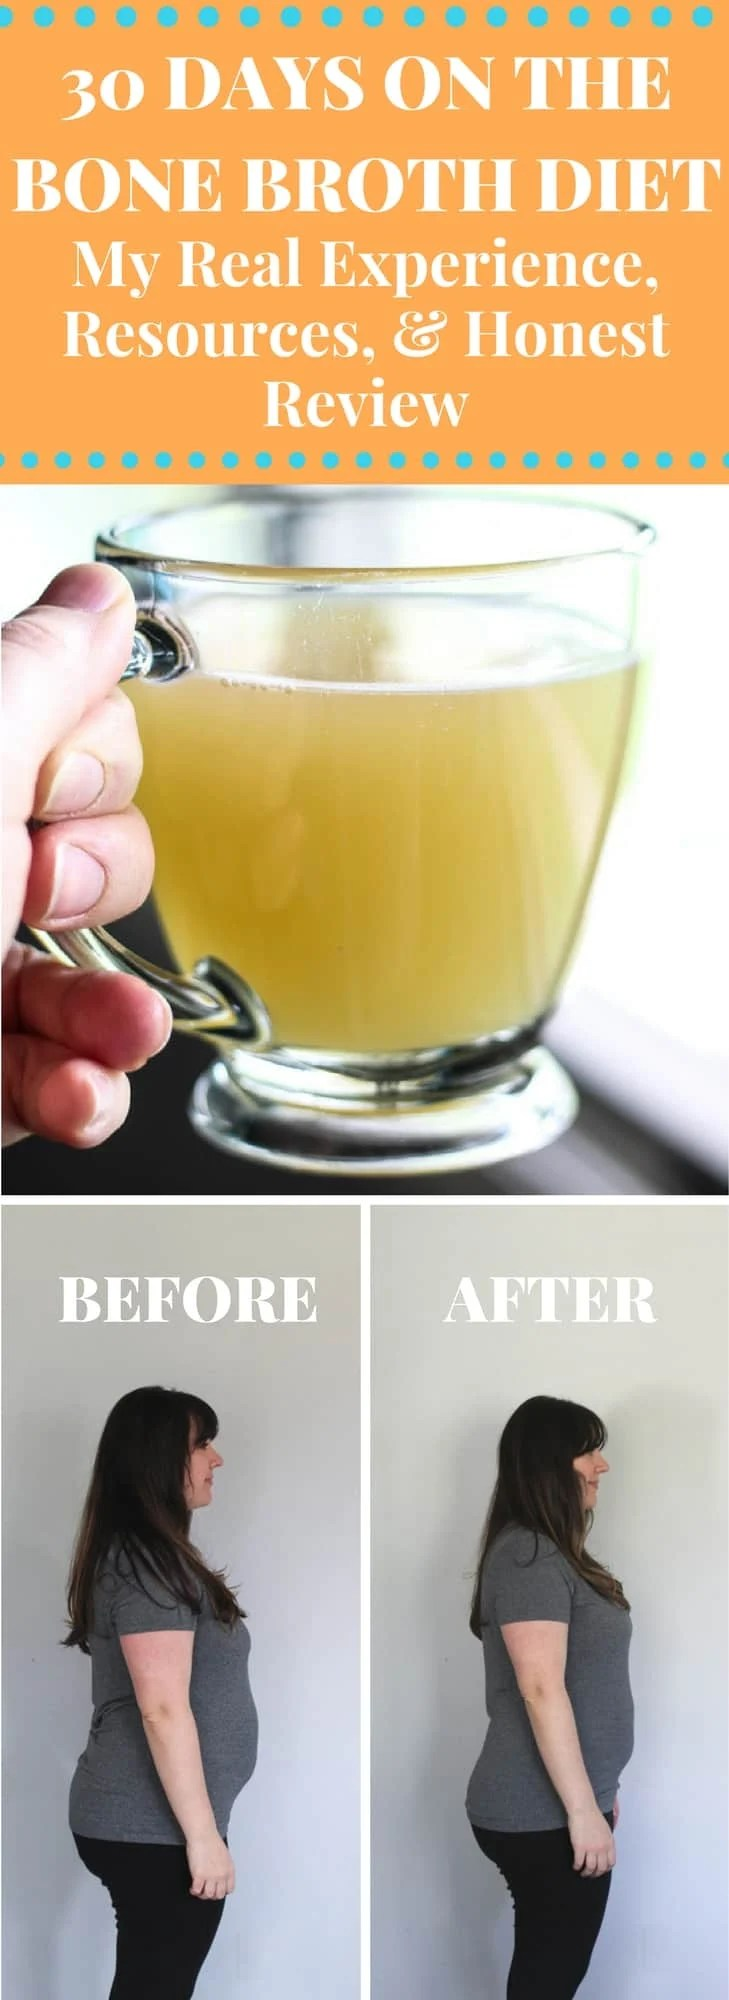 Bone broth diet results before and after photos, bone broth diet reviews